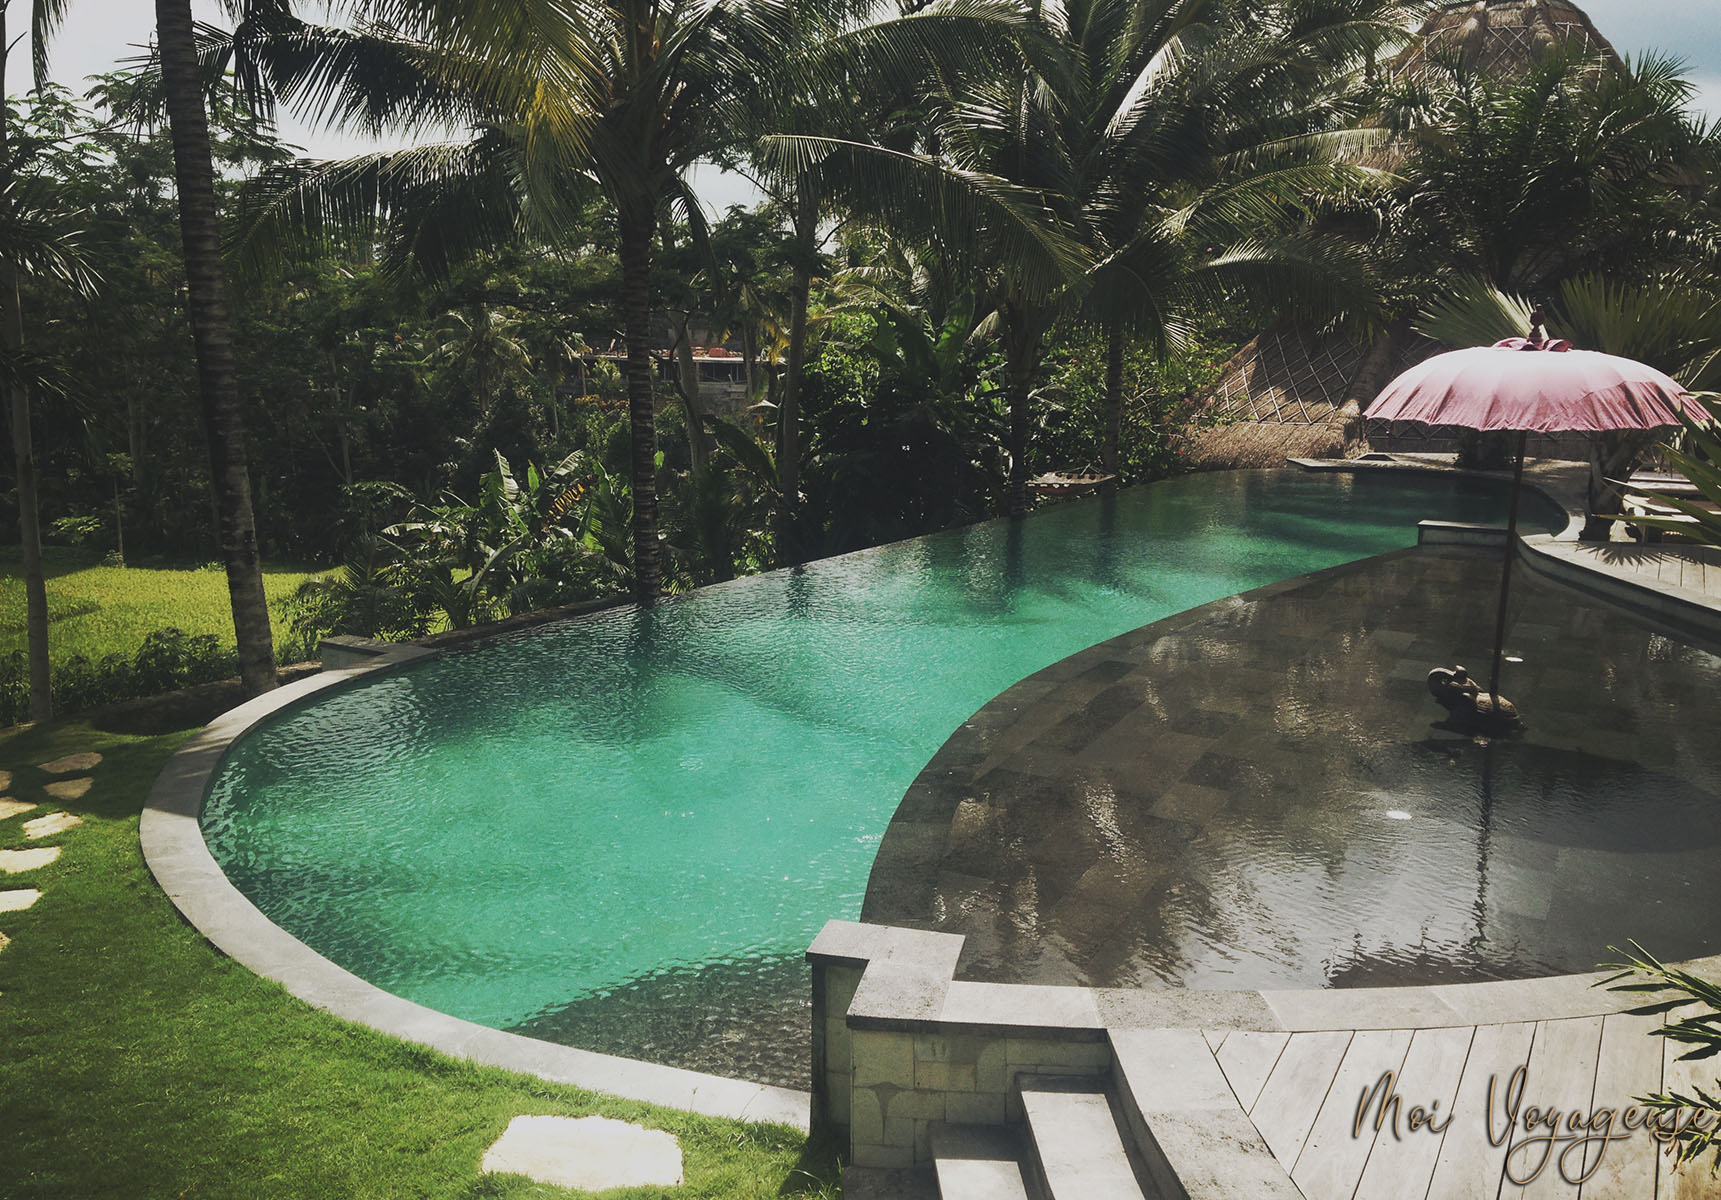 Blue Karma Resort Ubud Bali Swimming pool hotel honeymoon